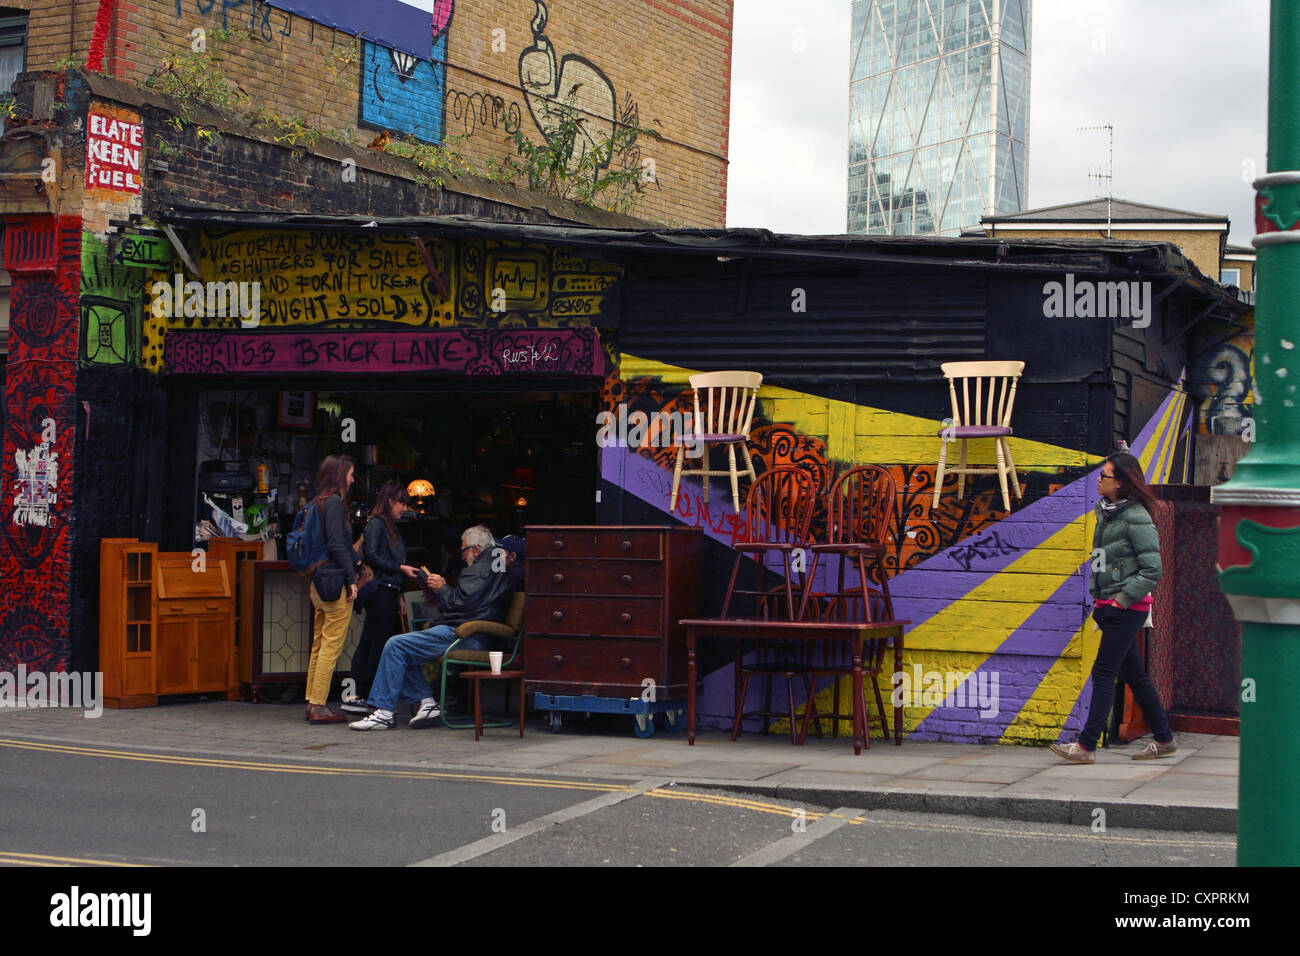 a 2nd hand furniture store in Brick Lane, London - Stock Image